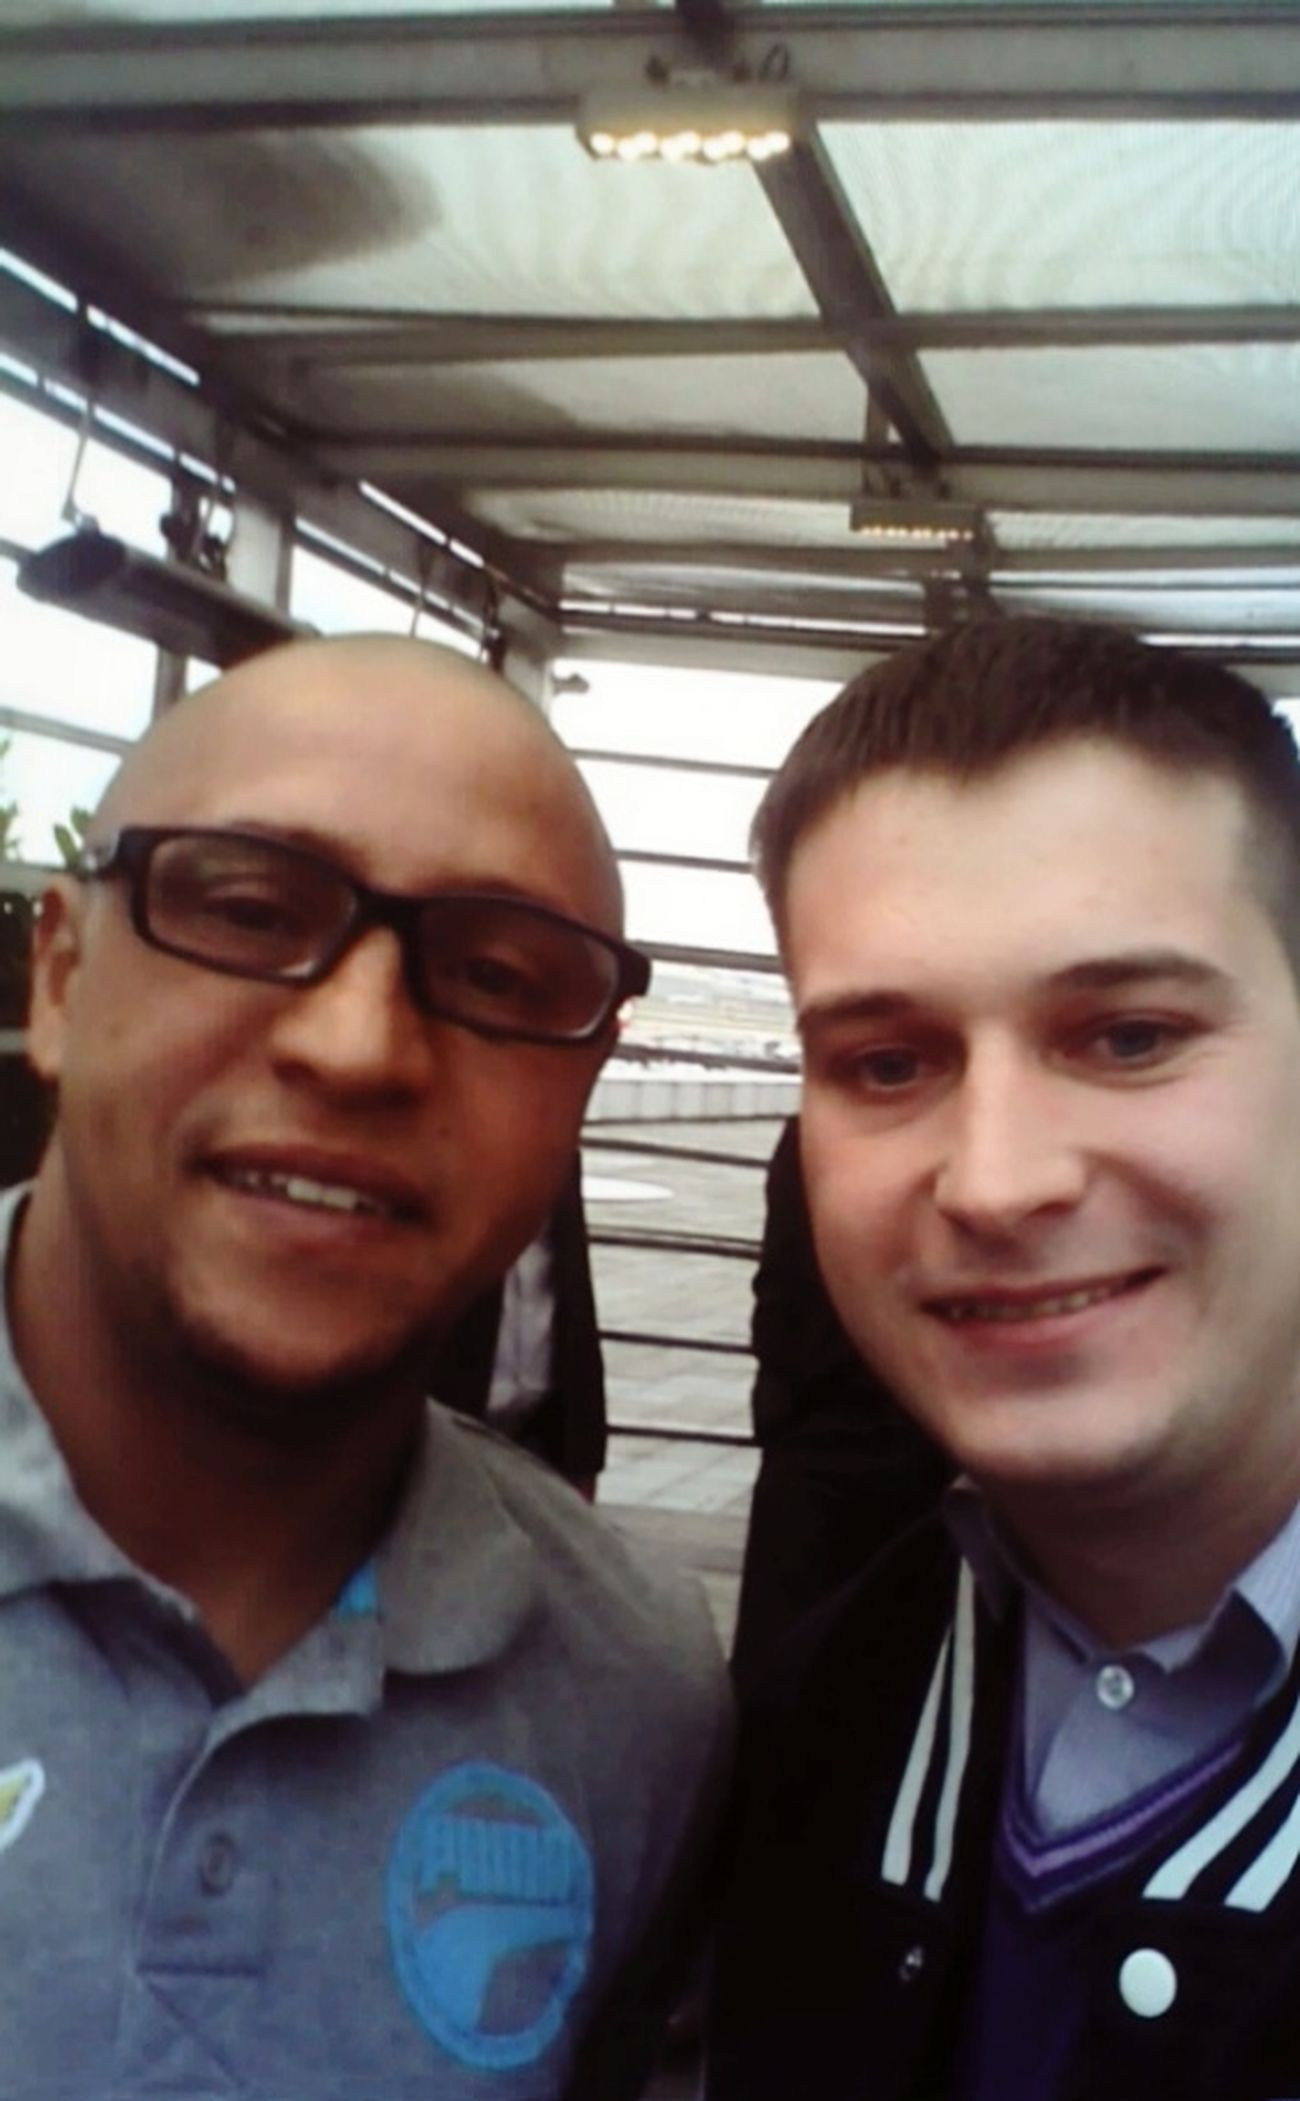 Roberto Carlos Taking Photos Football EyeEm Best Shots Popular Photo RobertoCarlos Selfie